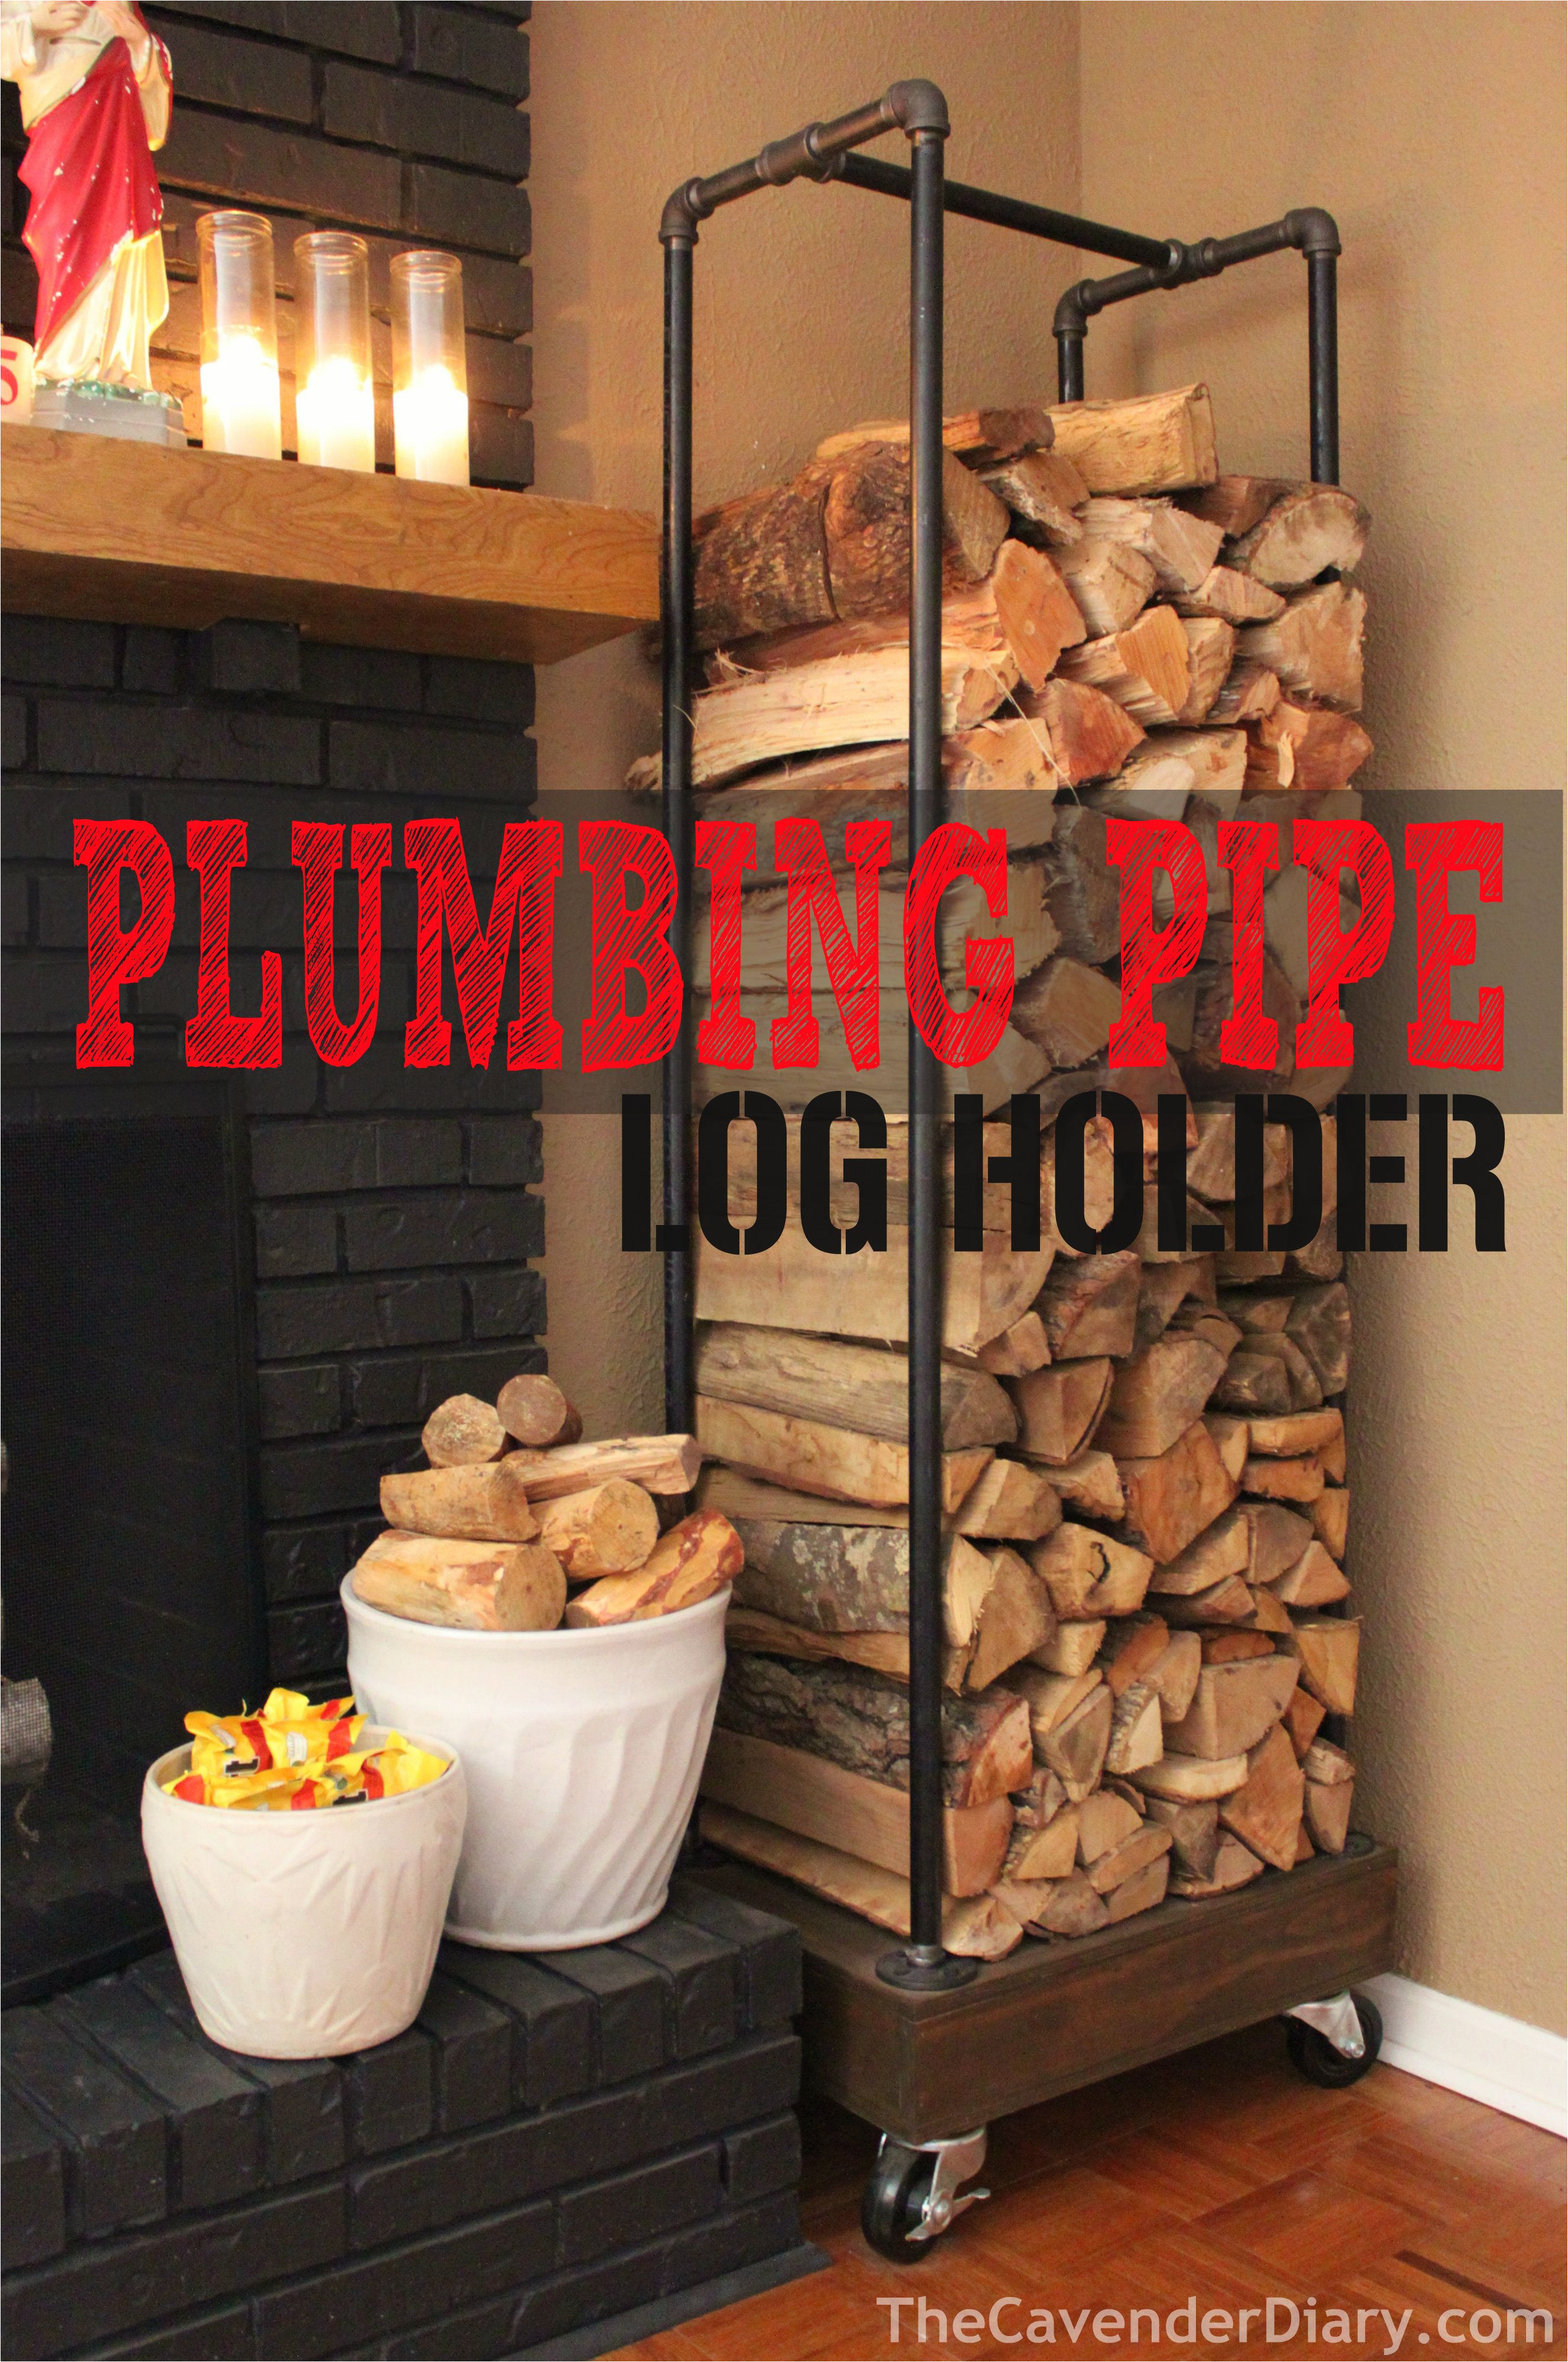 diy rolling log holder made from plumbing pipes thecavenderdiary com